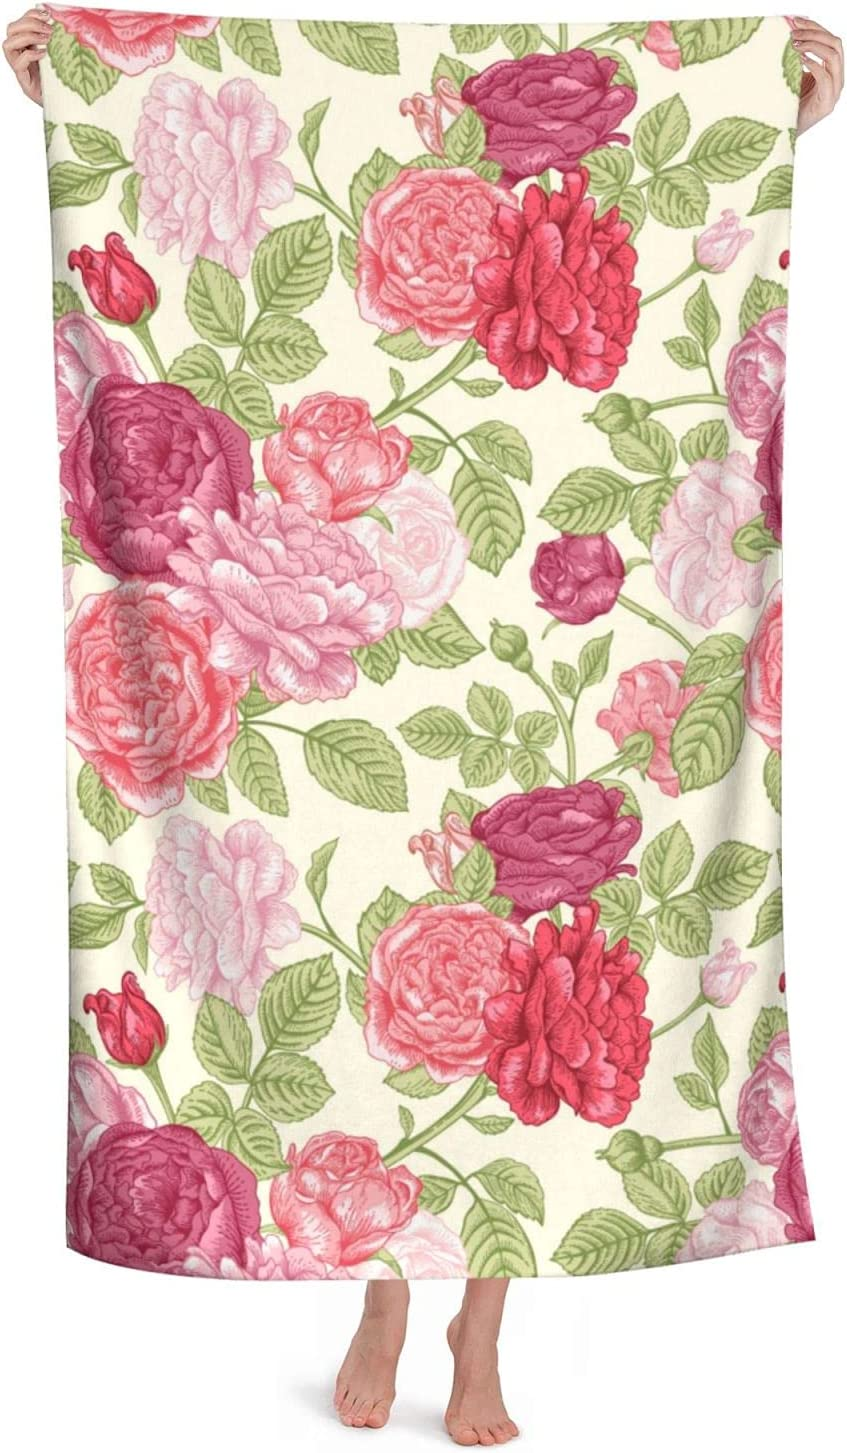 English Roses New sales Microfiber Beach Towels Quick store 52